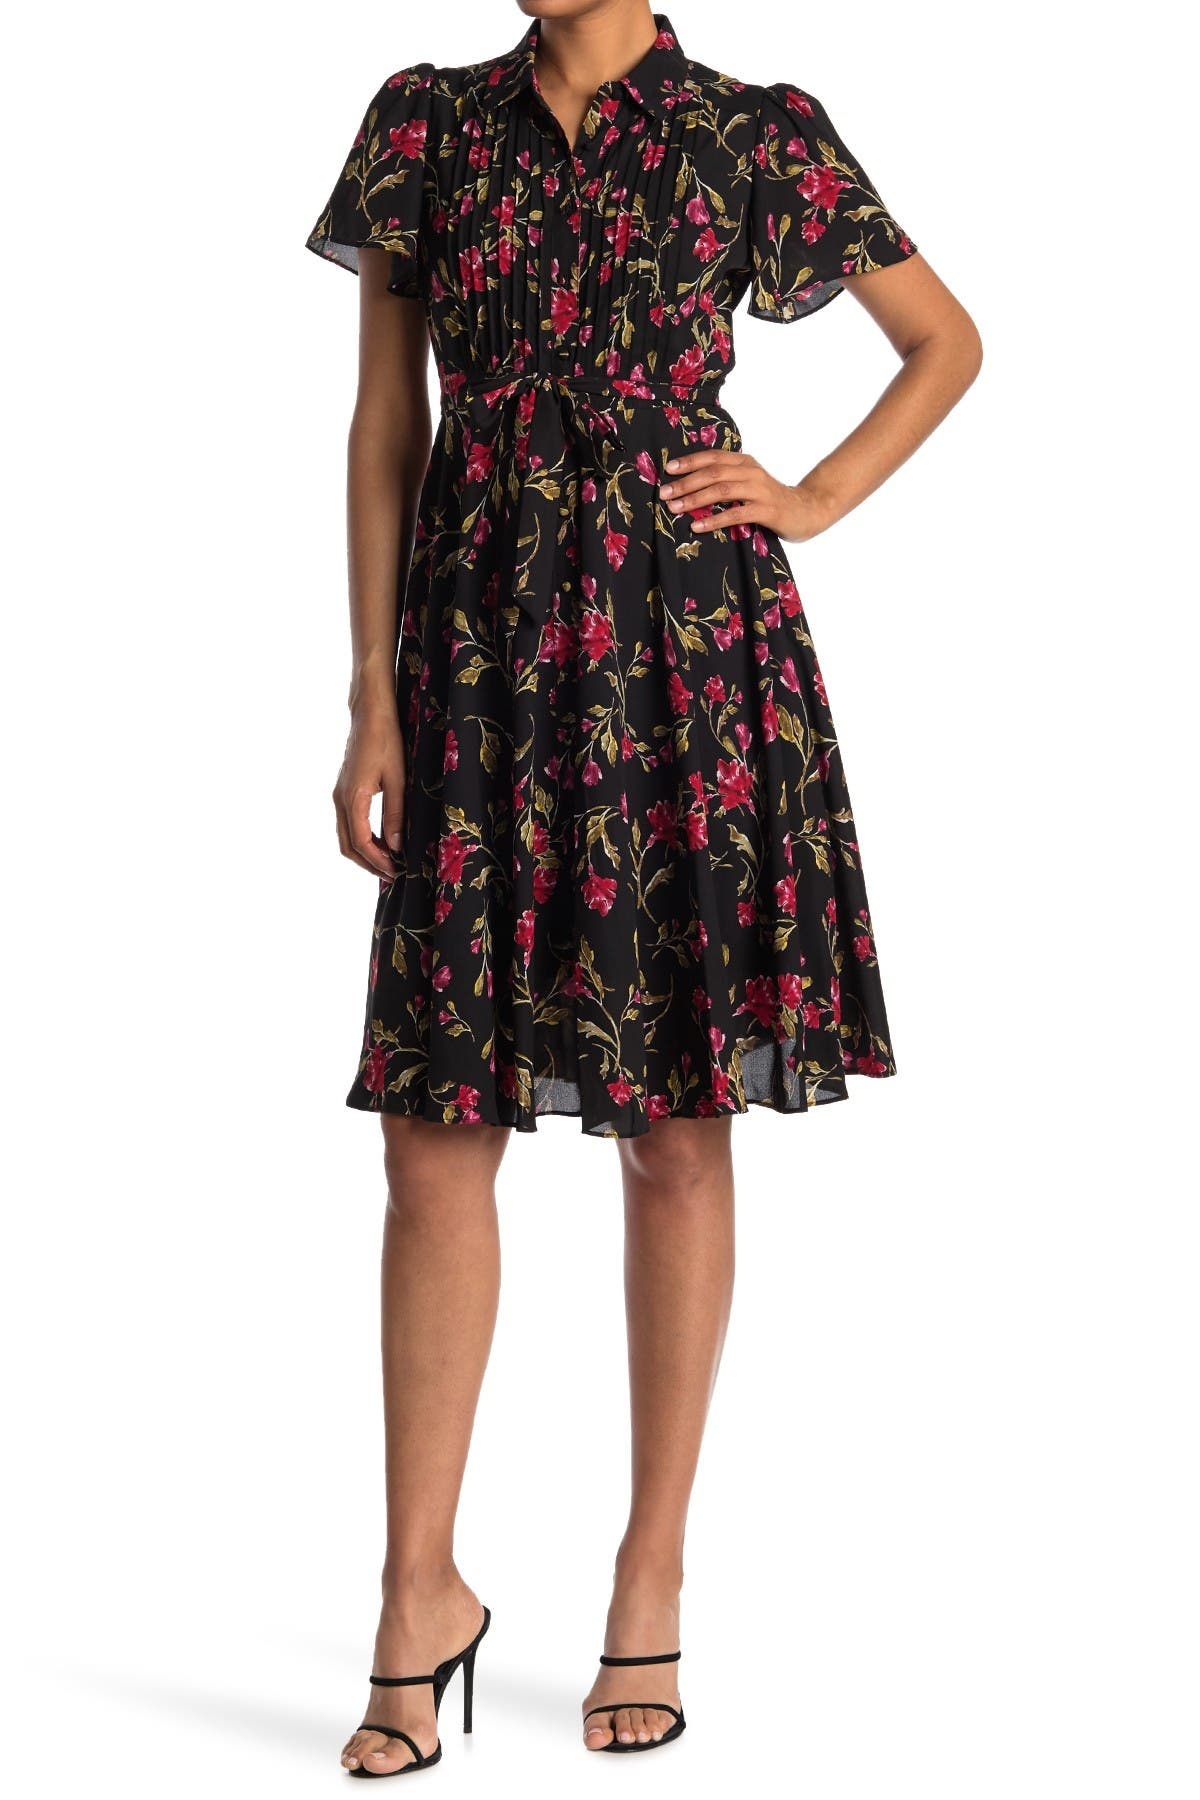 Image of NANETTE nanette lepore Flutter Sleeve Floral Print Pintuck Shirt Dress